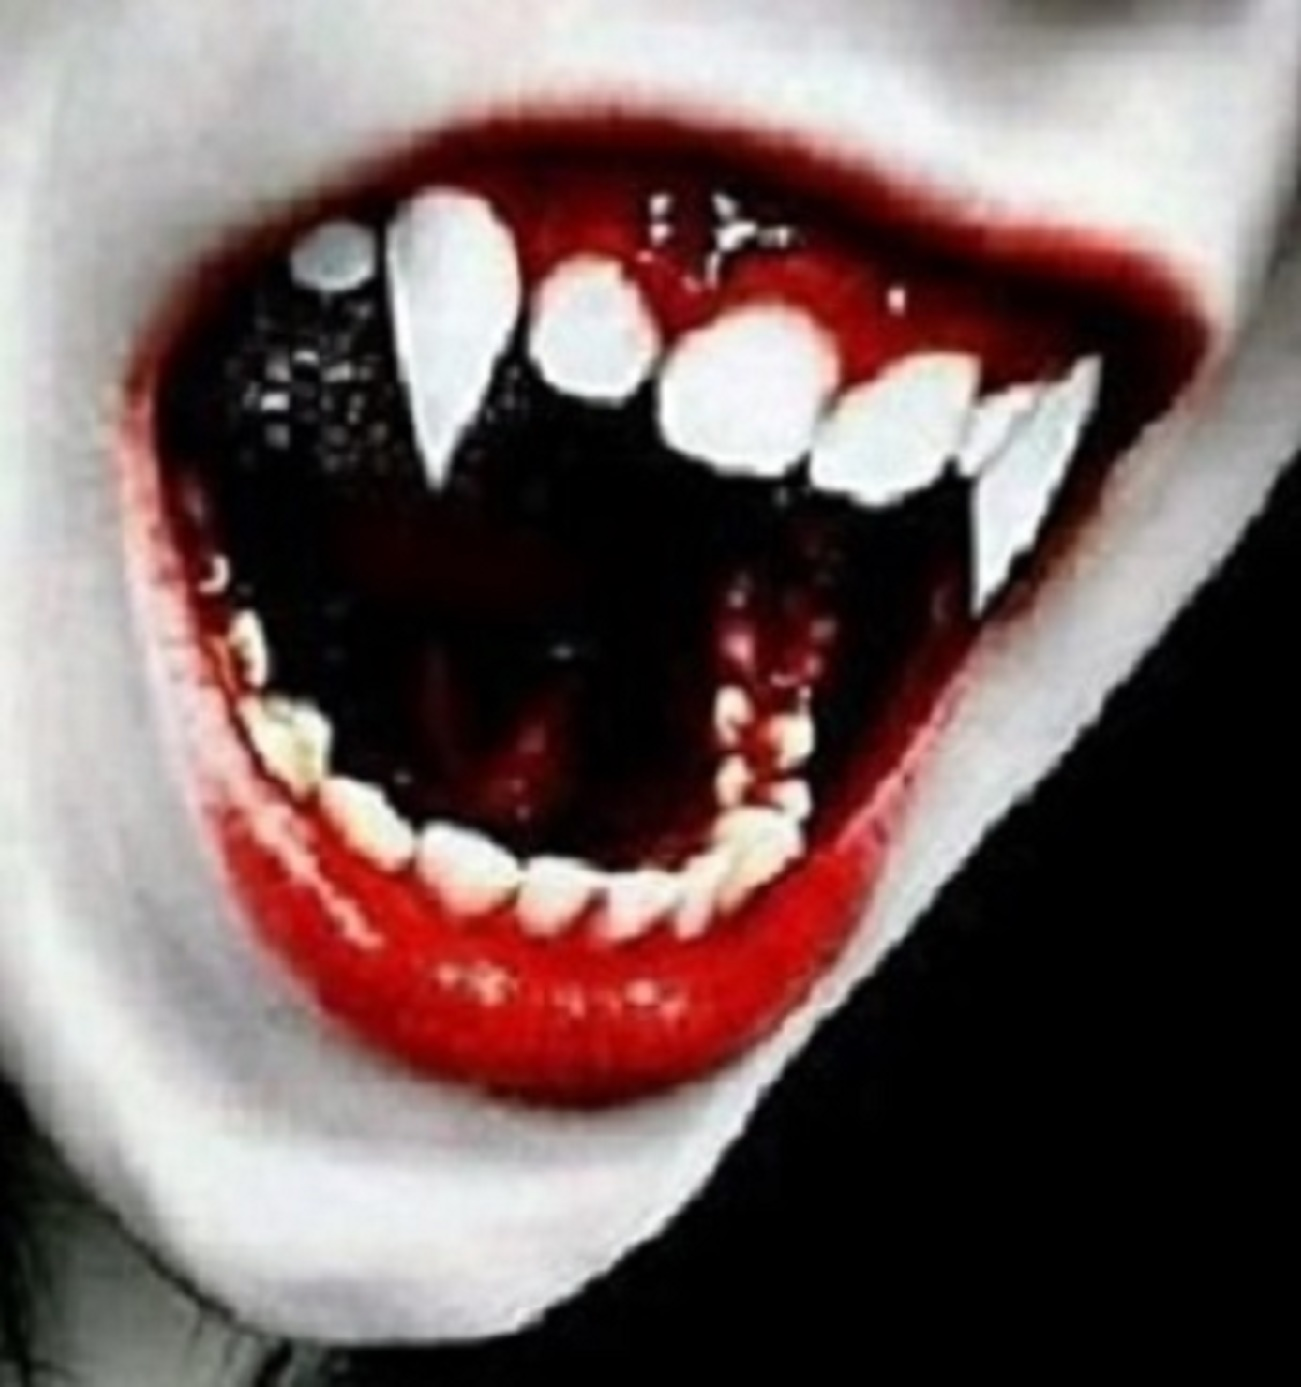 make you the star of your own Vampire story